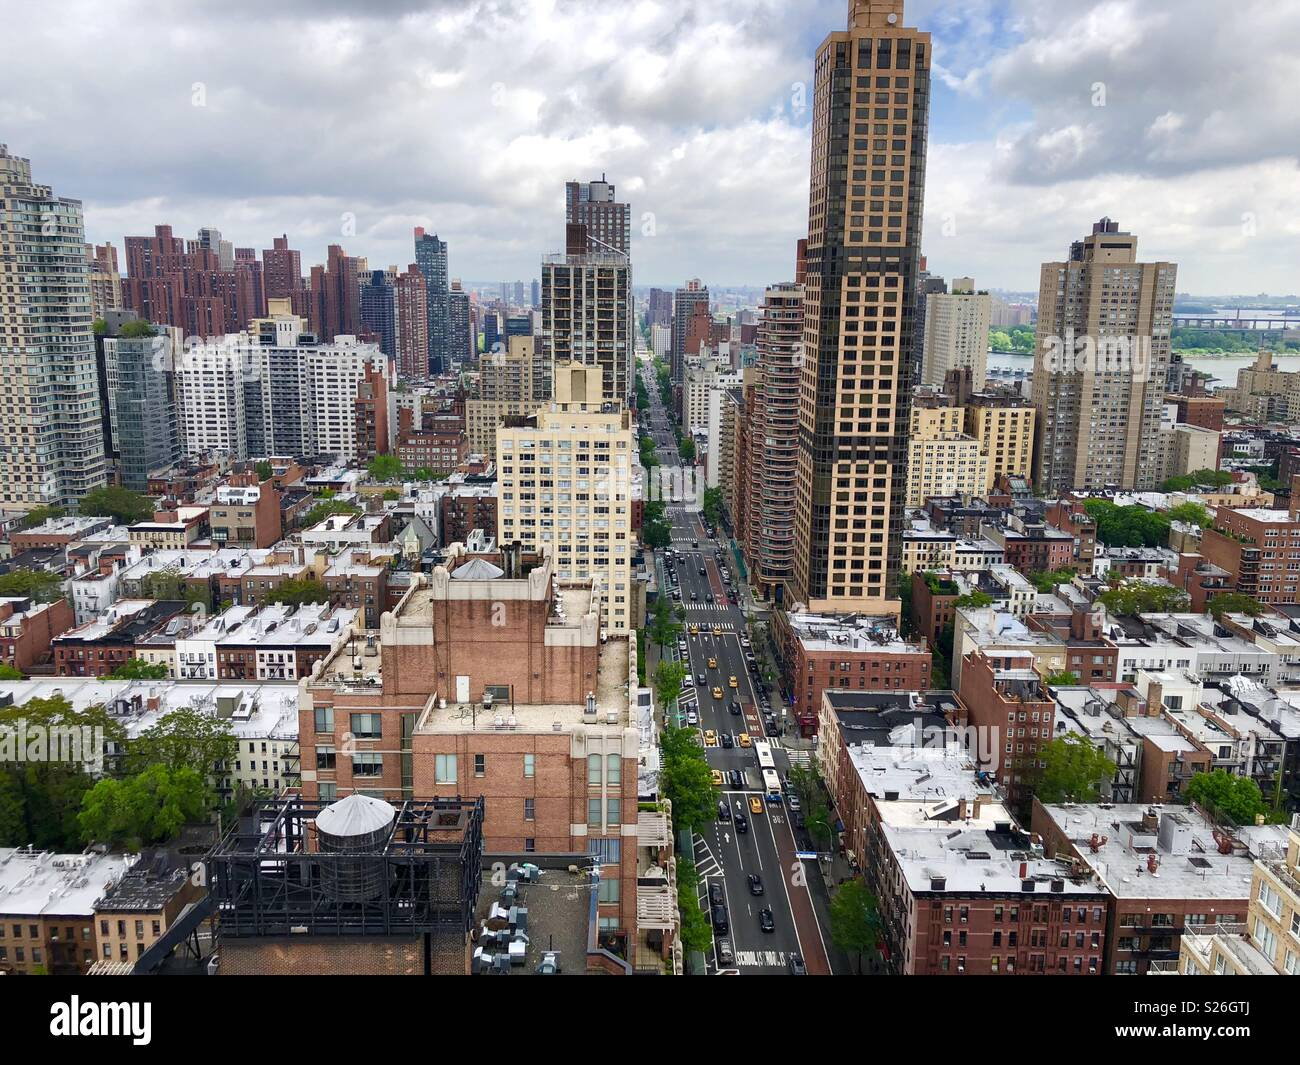 Manhattan from Hi rise rooftop - Stock Image